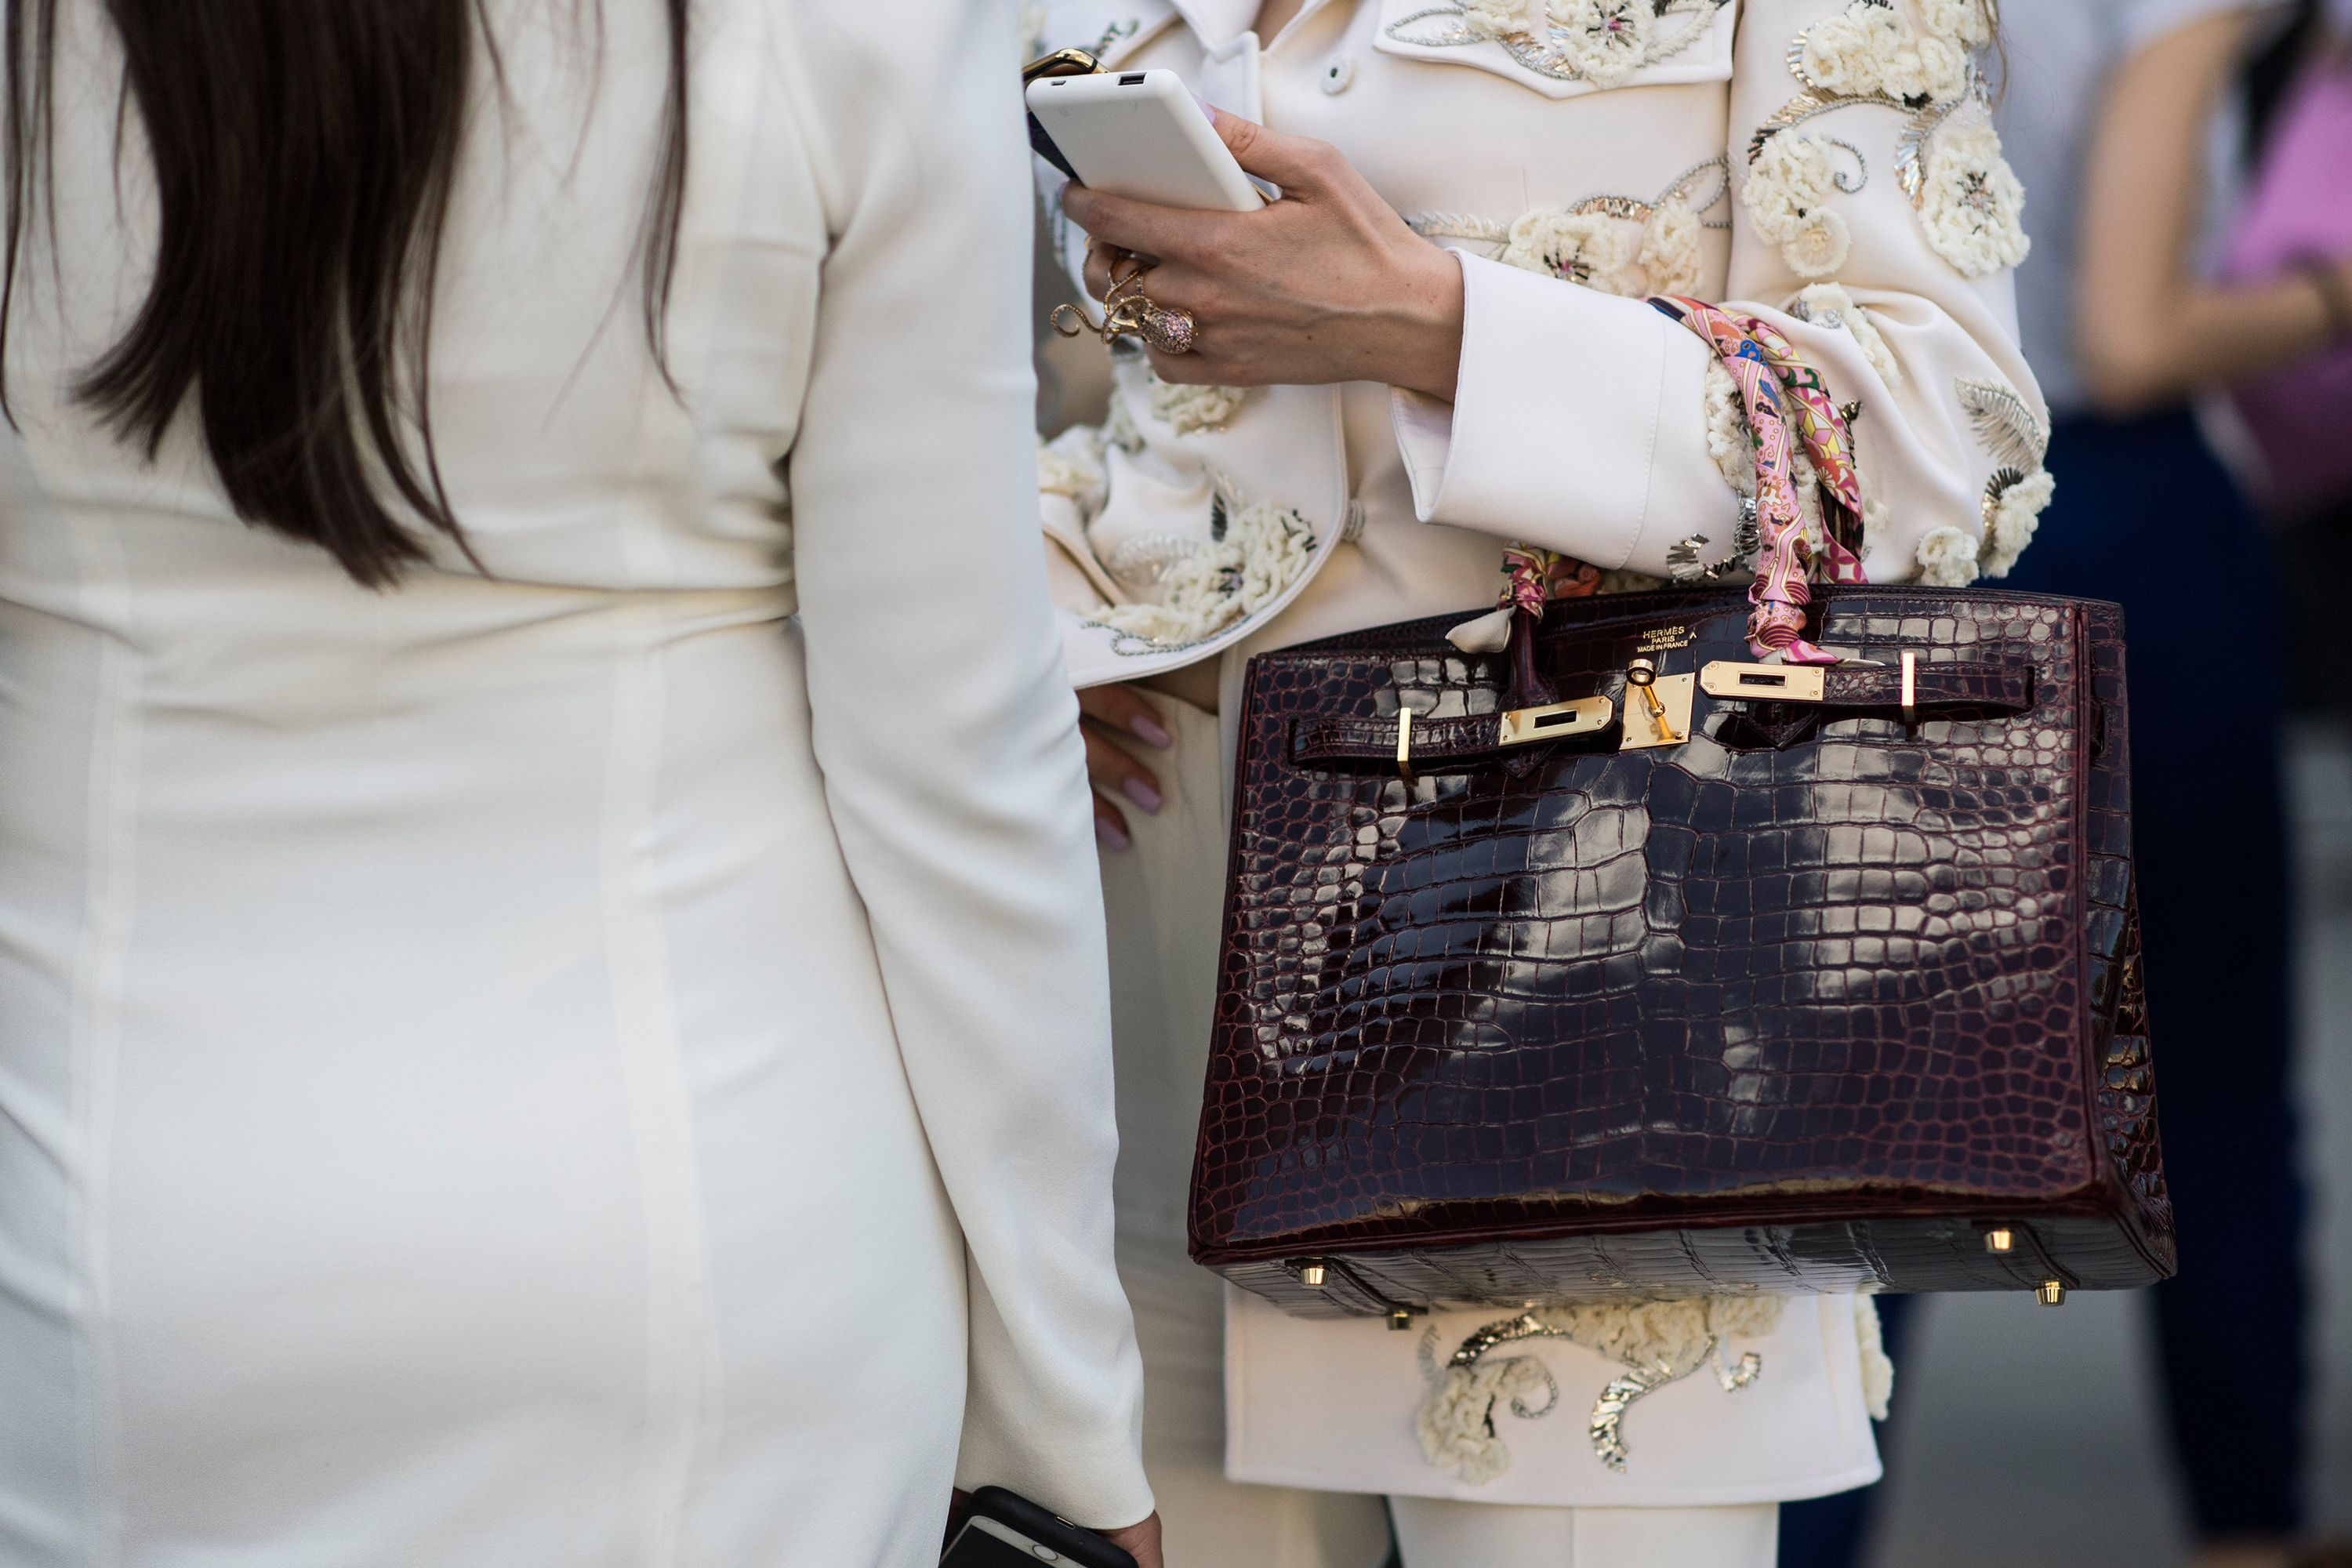 Hermés Birkin bag sells for over £160,000 in London auction